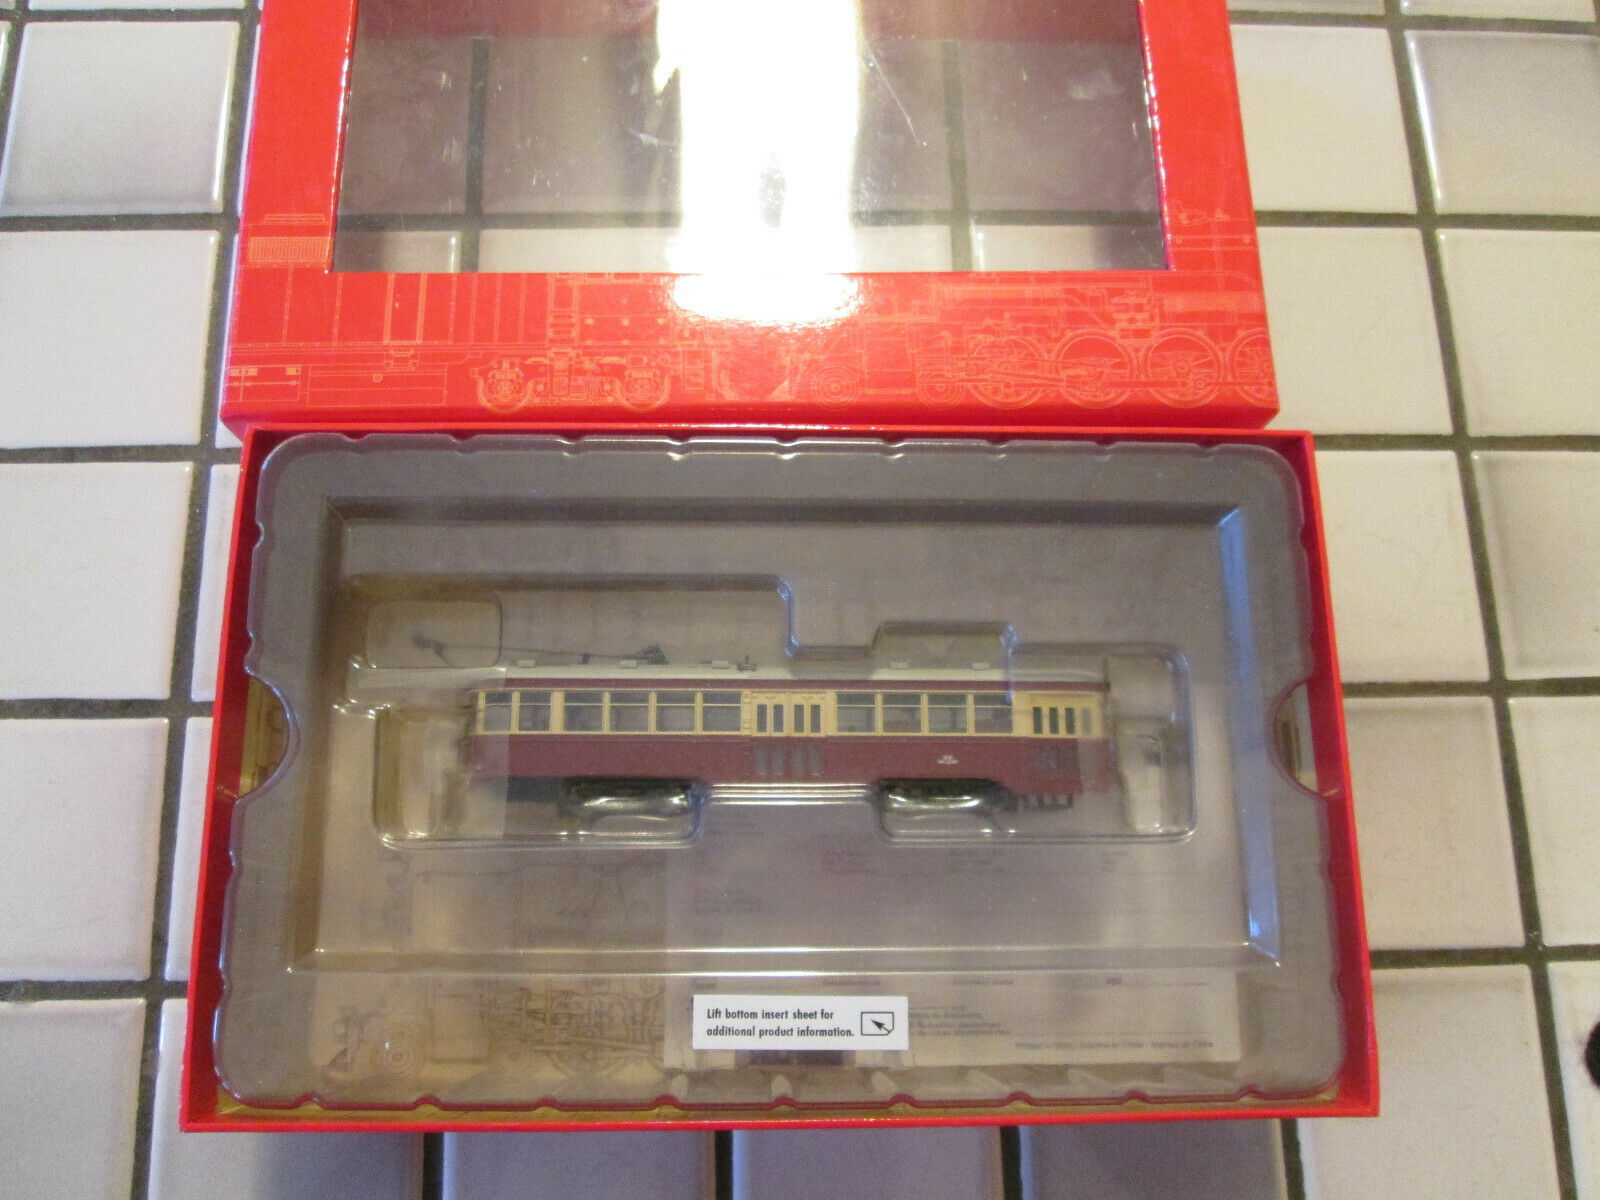 Spectrum peter witt street car with interior and lights HO scale DCC on board